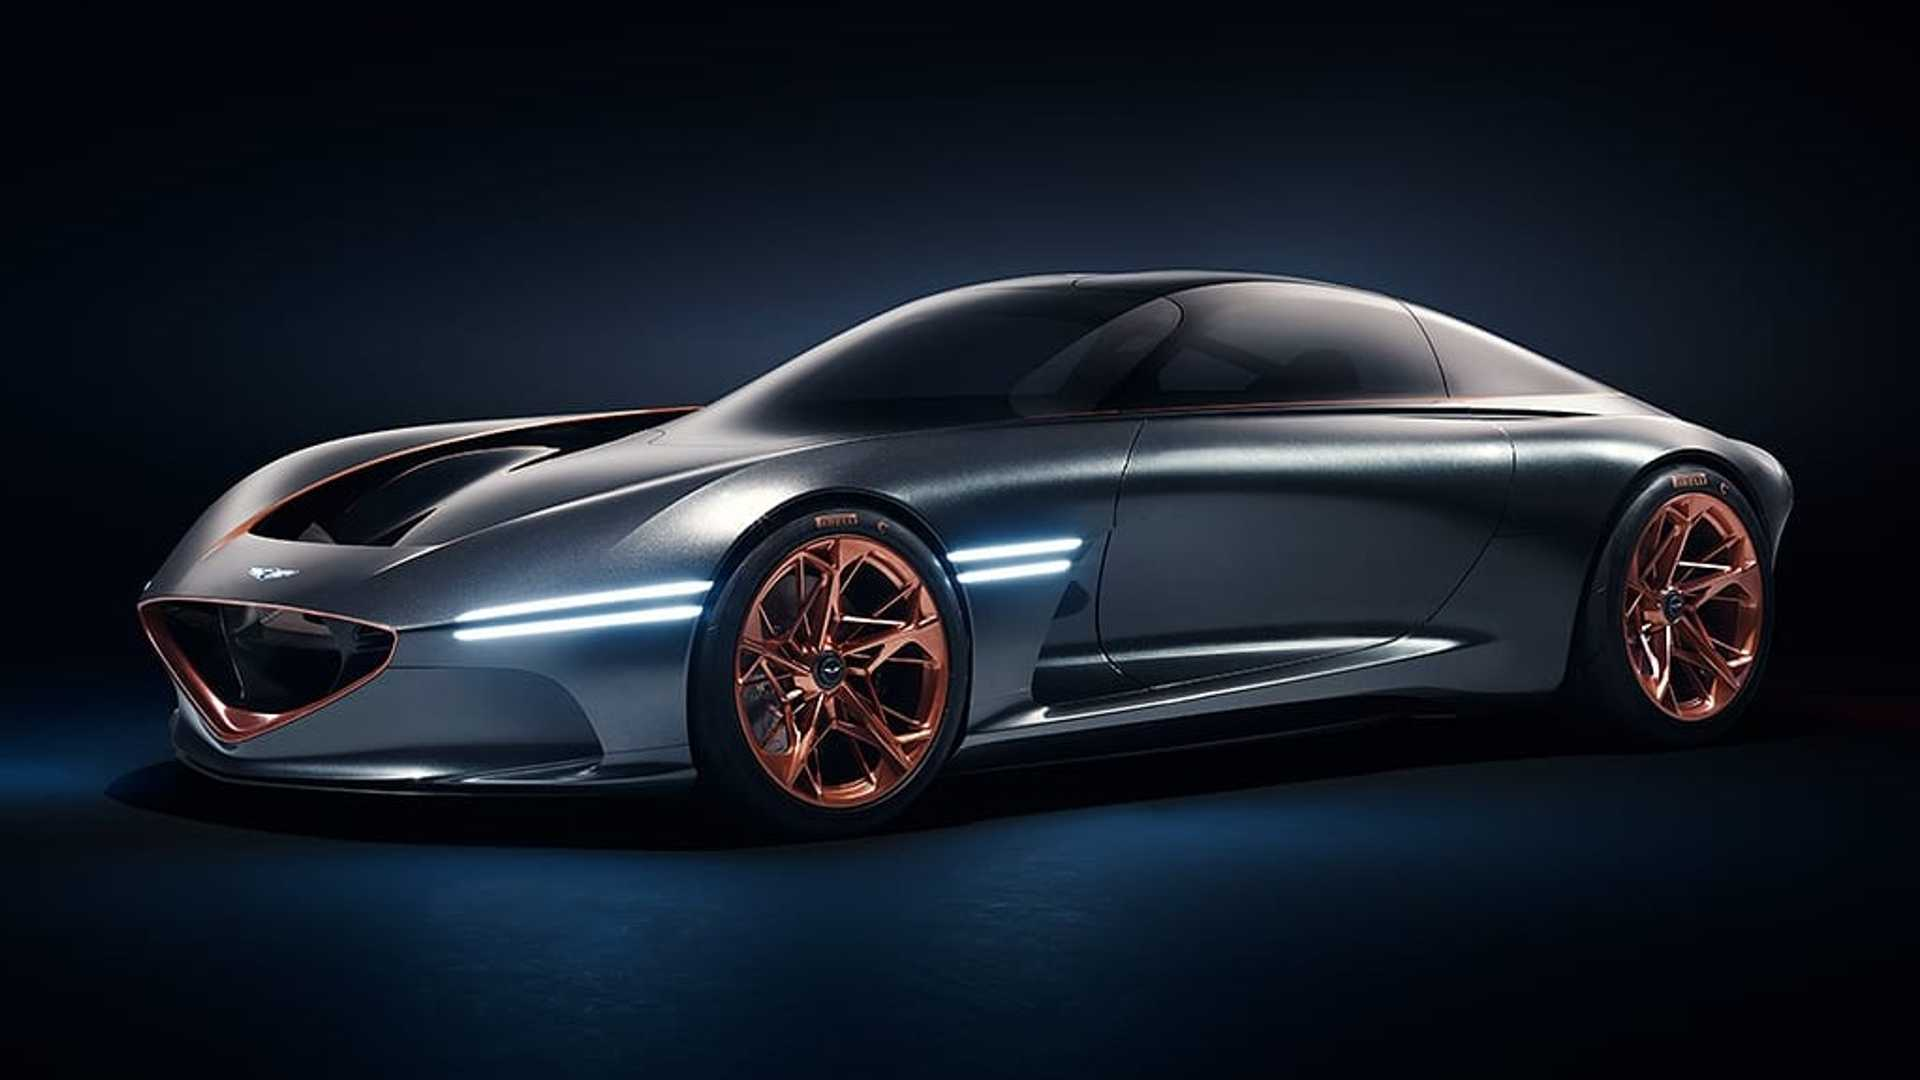 Best Looking Cars 2021 2021 New Models Guide: 30 Cars, Trucks, And SUVs Coming Soon